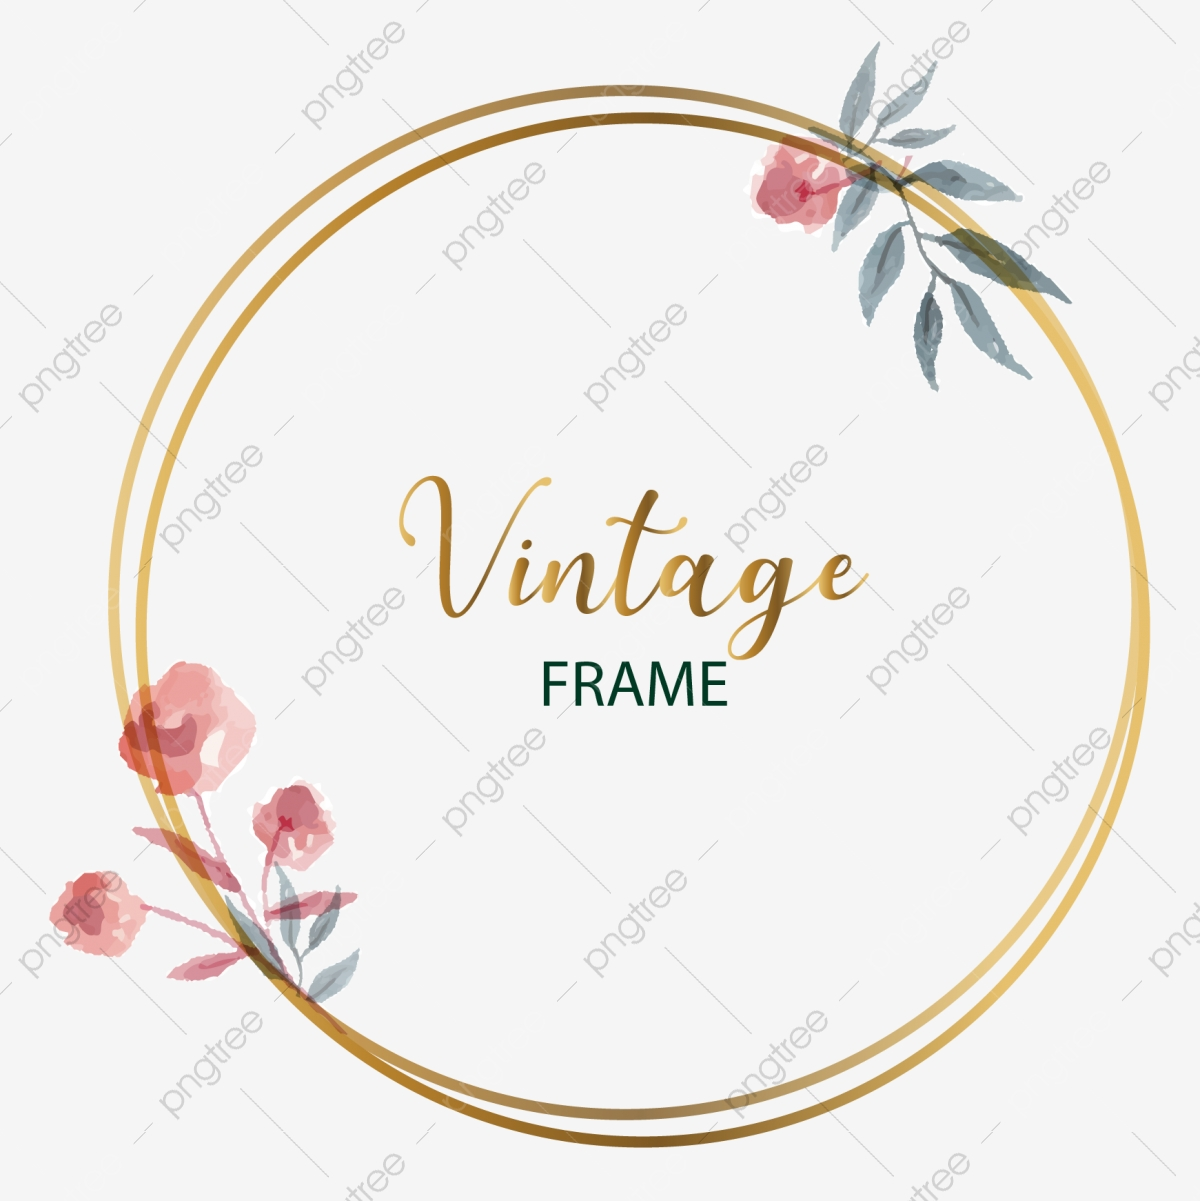 Vintage Circle Golden Frame For Wedding Invitation Card